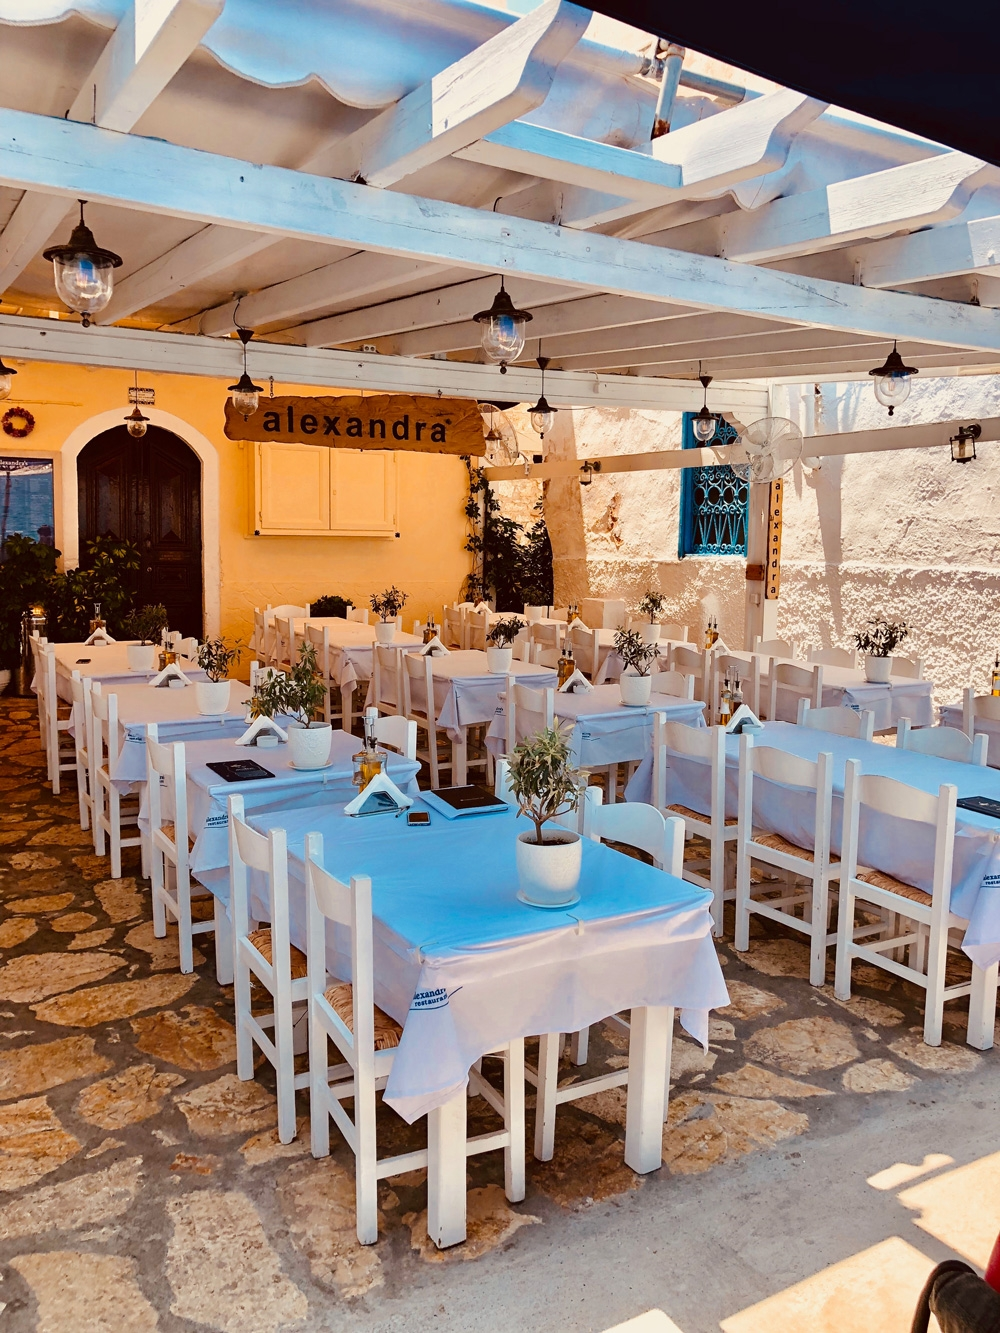 Alexandra Restaurant is a pastel yellow building with stone floors and white outdoor table seating